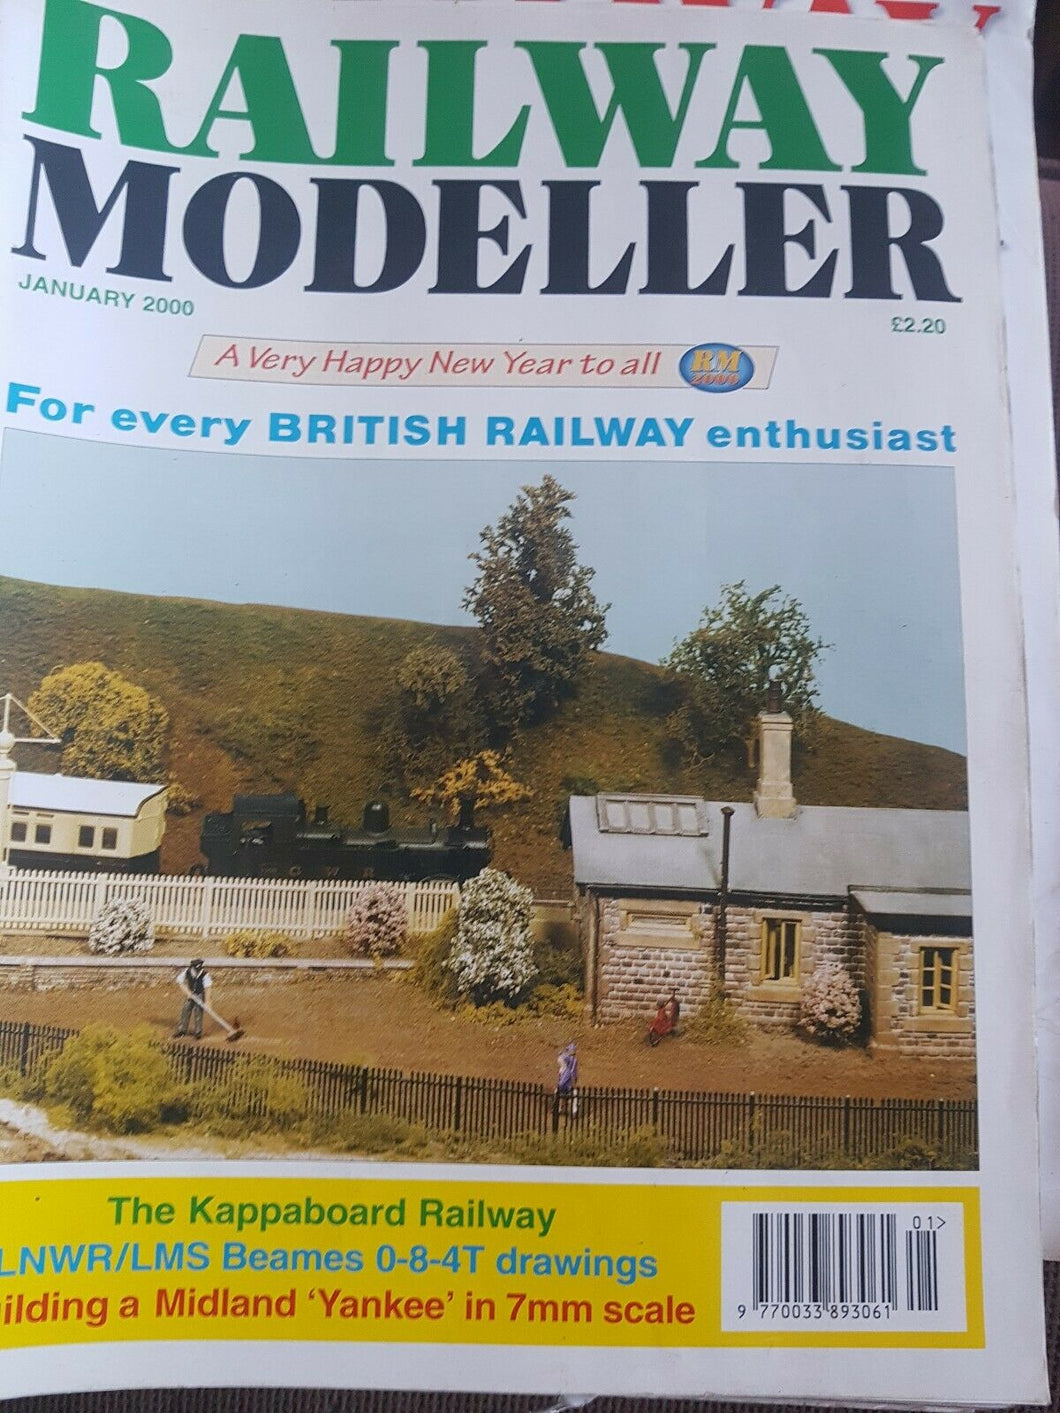 Railway modeller magazine January 2000